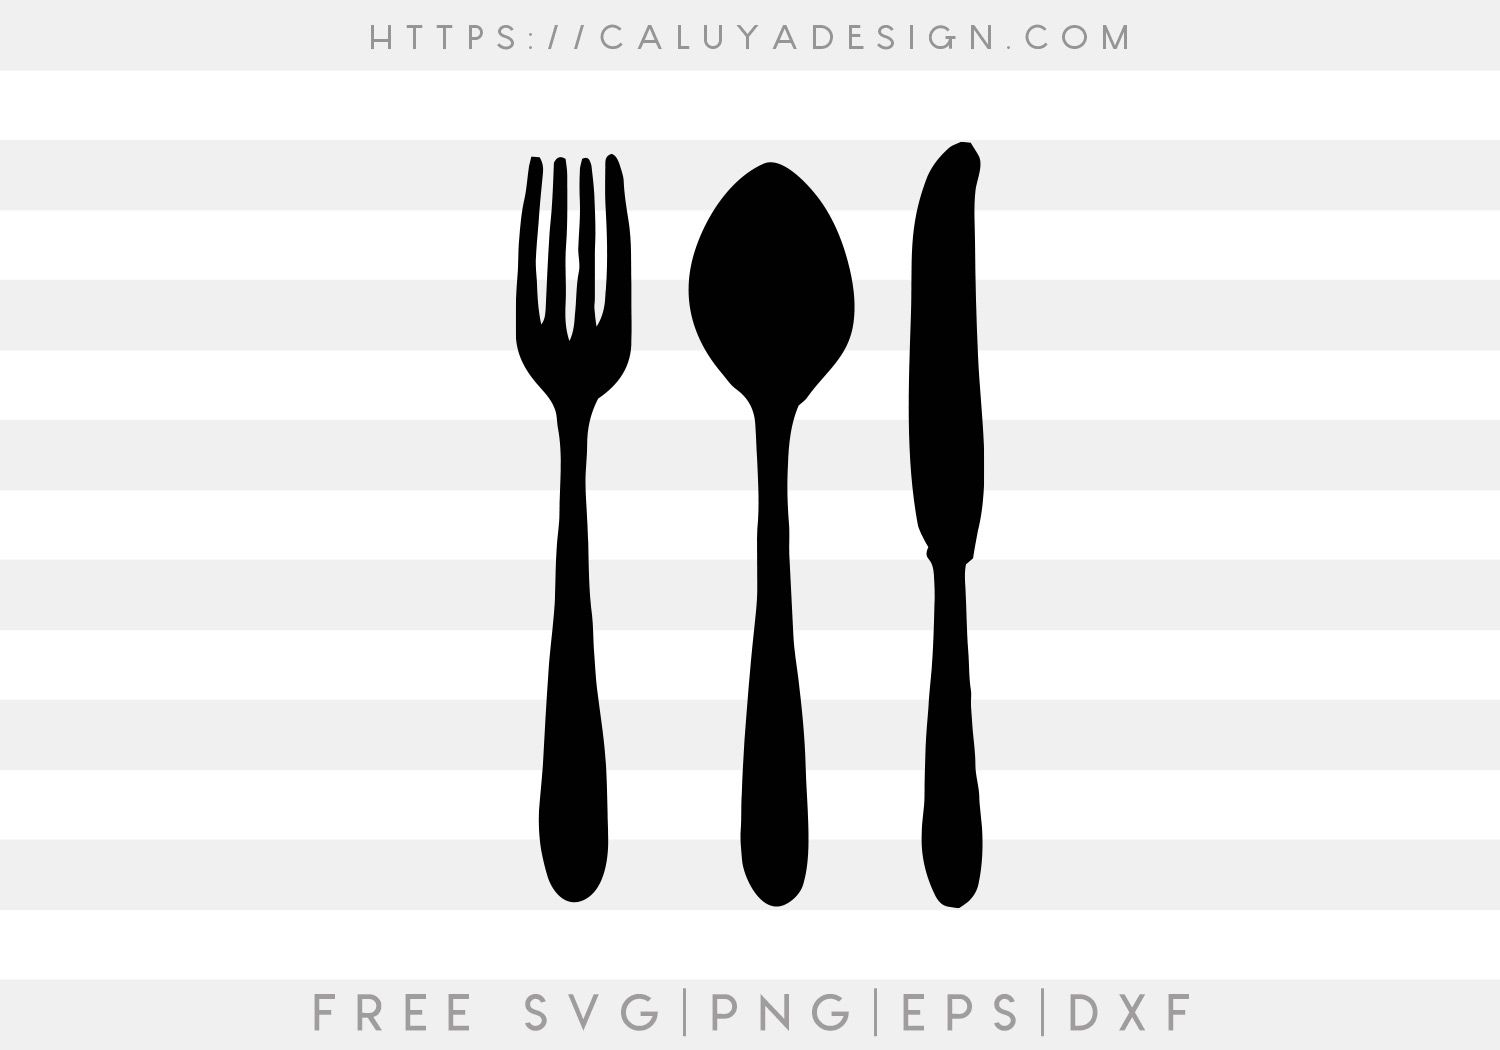 Free Cutlery Set Svg Eps Amp Dxf By Caluya Design In